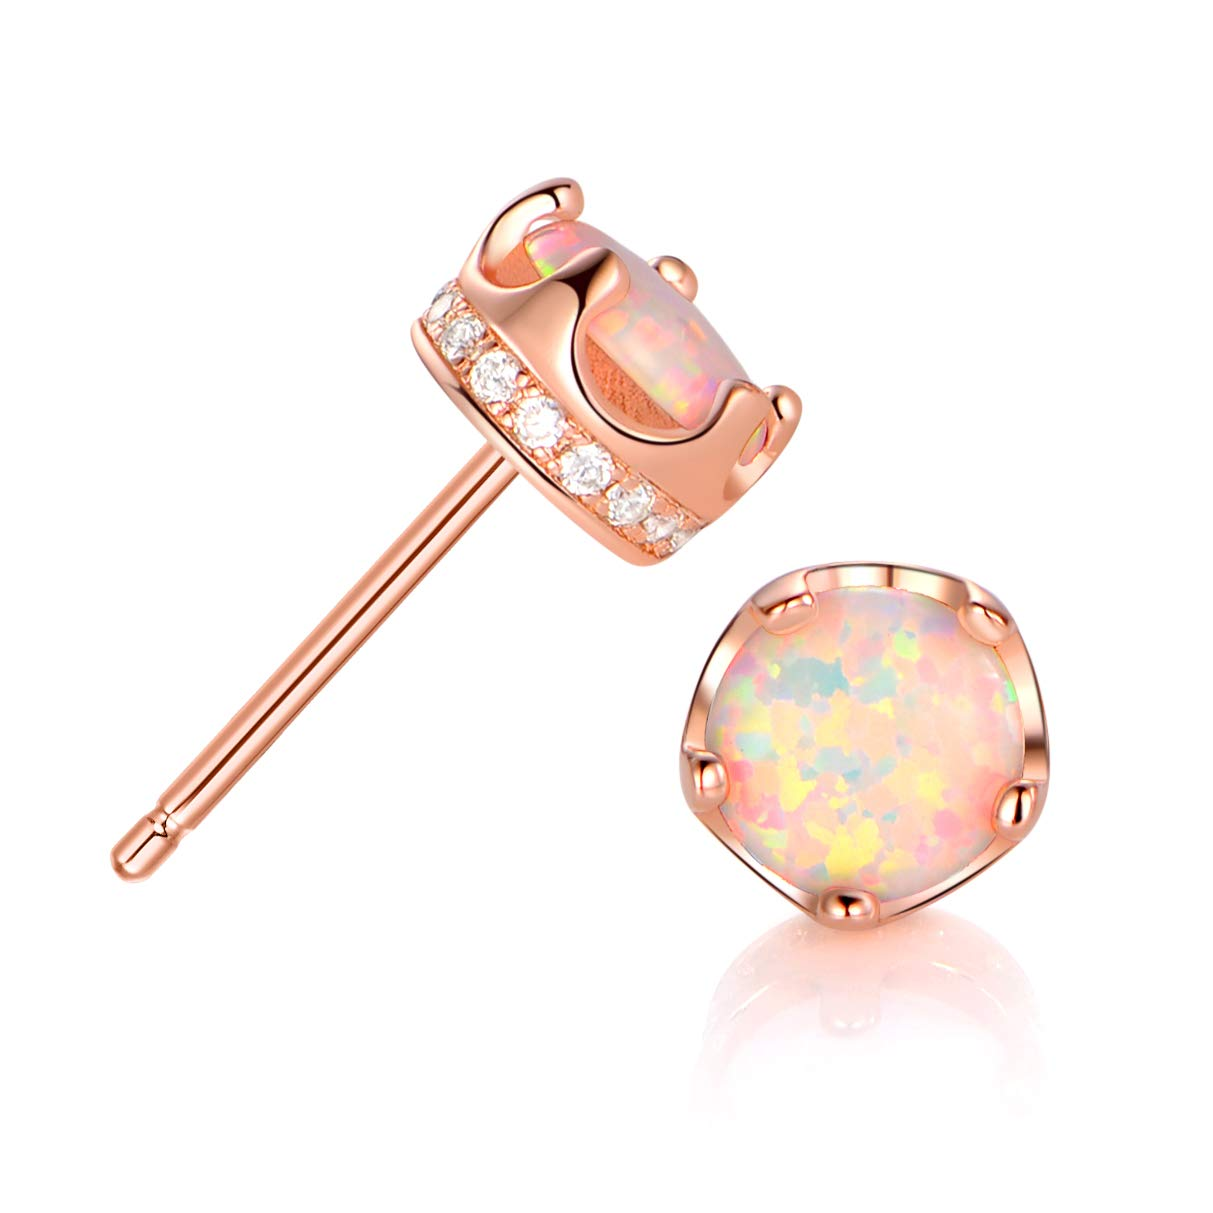 44fca2abf This is crown opal stud earring, the opal stone size is 6mm, the opal is  Synthetic Opal which produced in japan.They\'re not too big and not too  small.